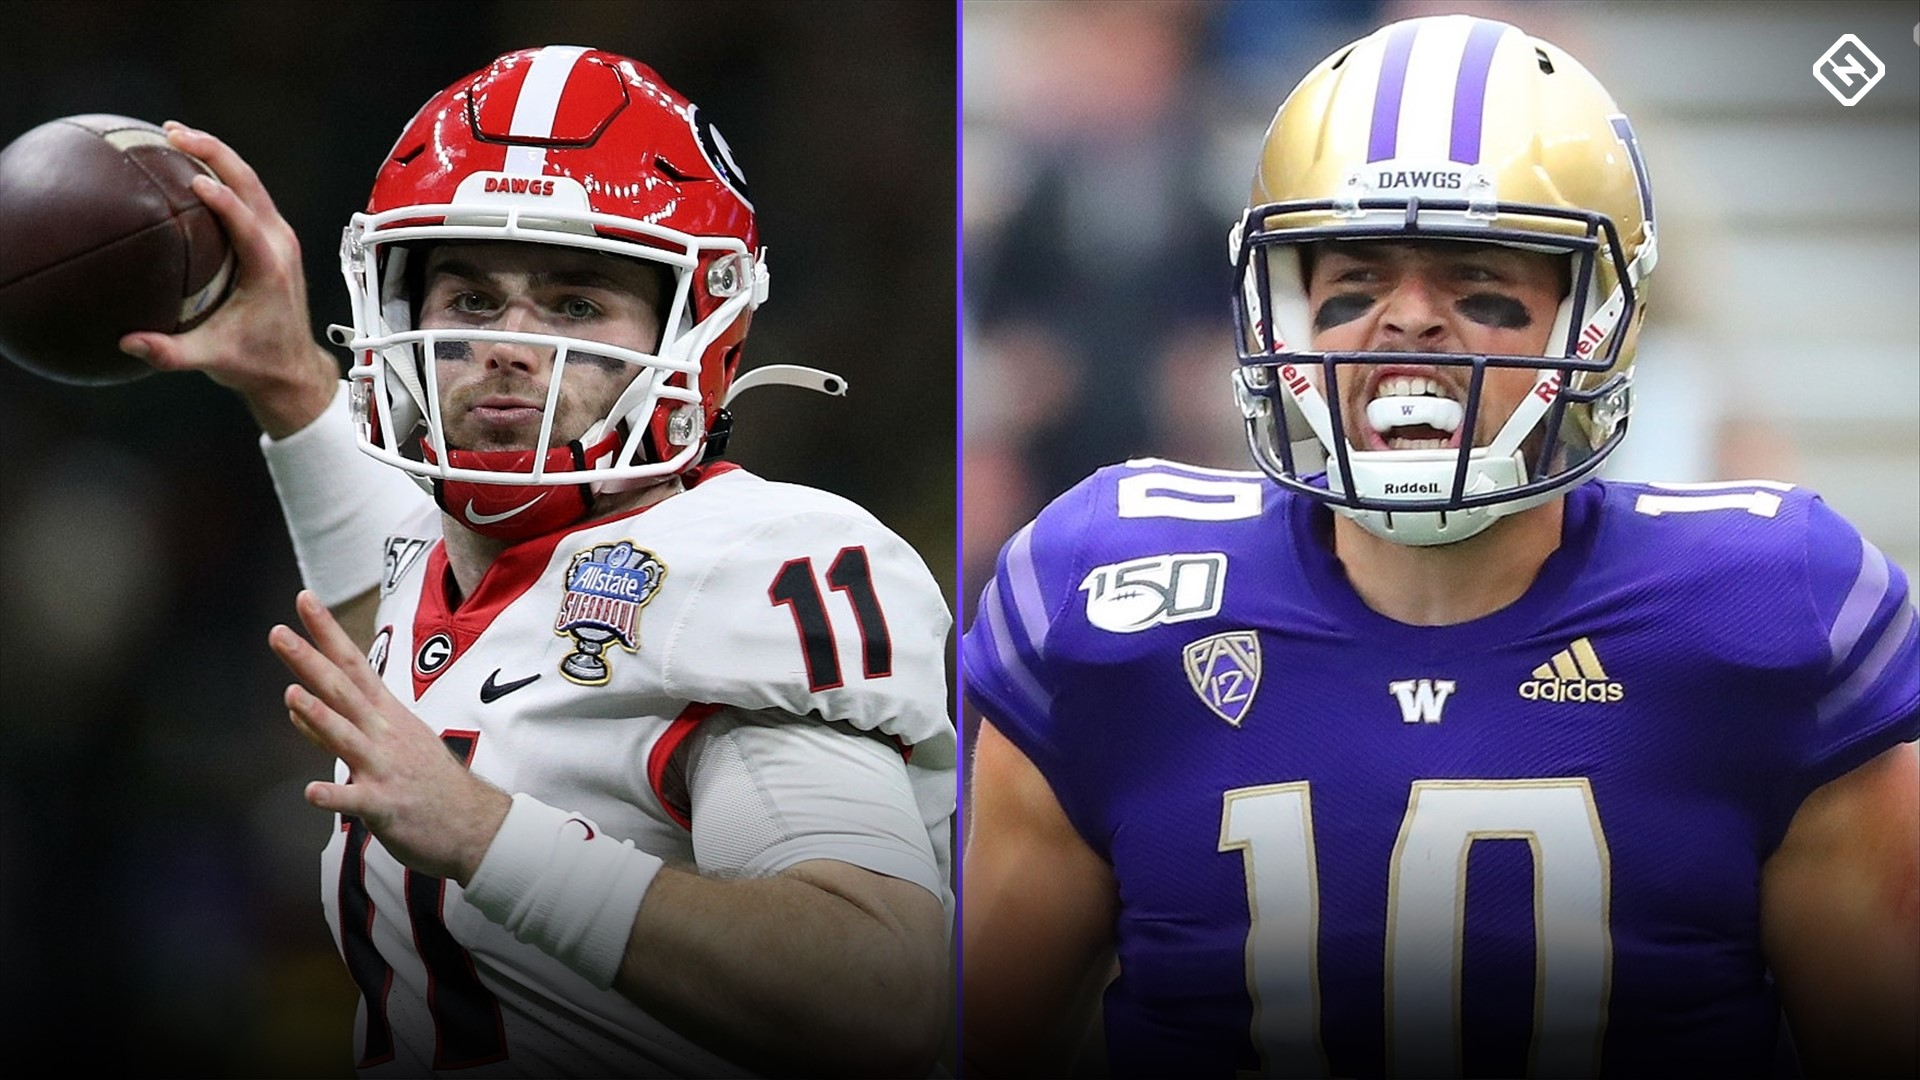 NFL Draft picks 2020: Who are the best players still available on Day 3? 1